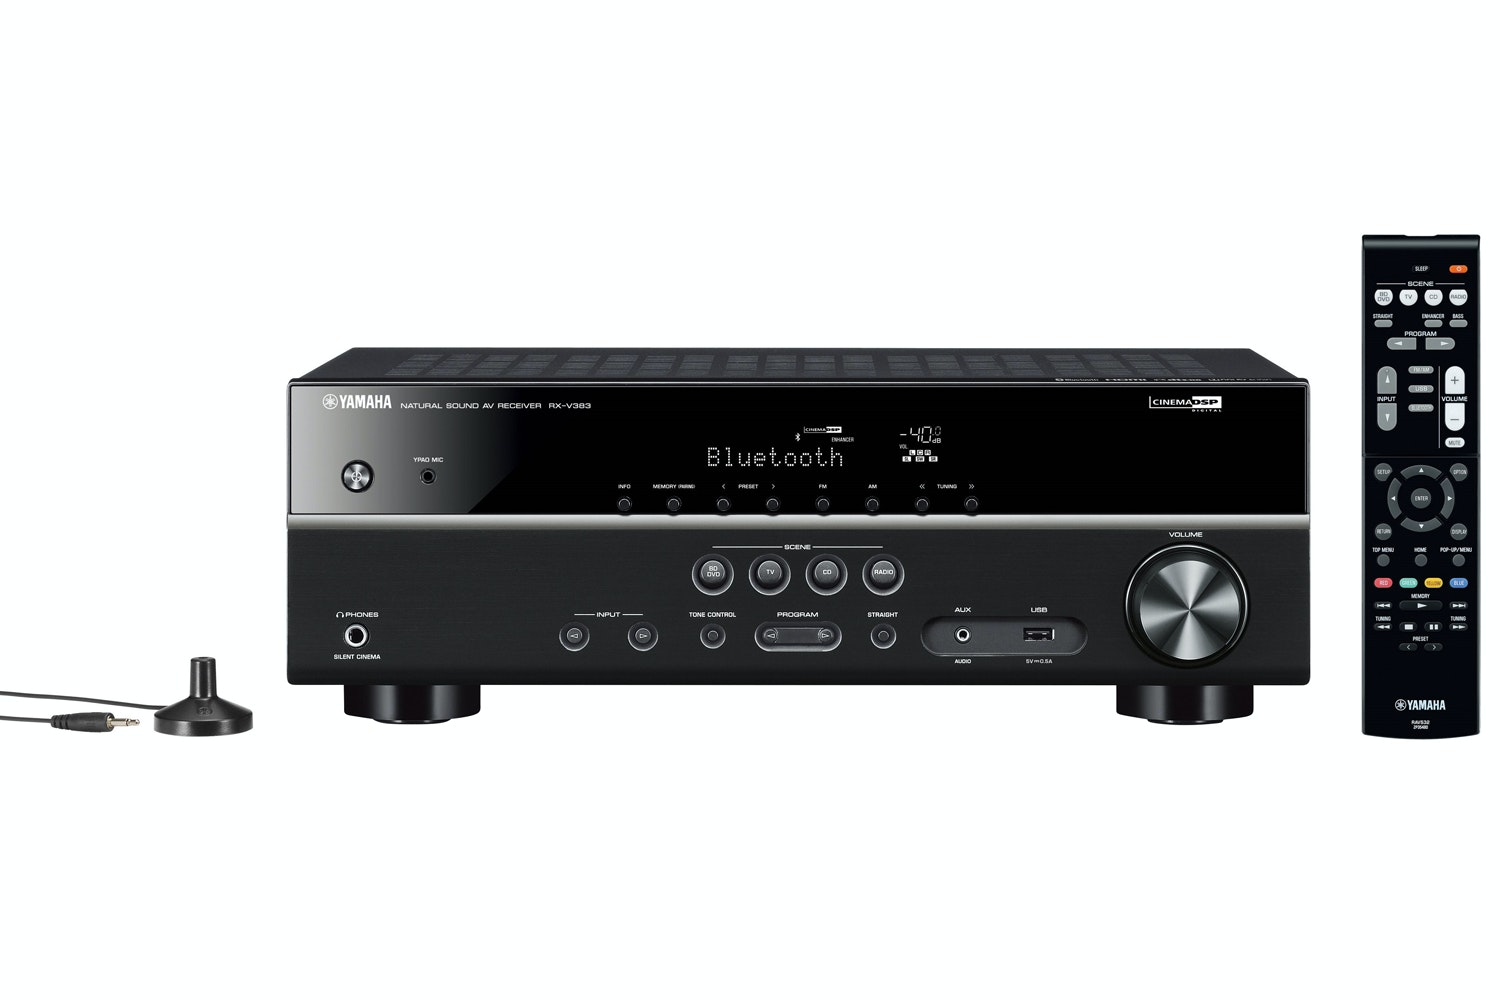 Yamaha RX-V383 5.1 Channel AV Receiver | Black